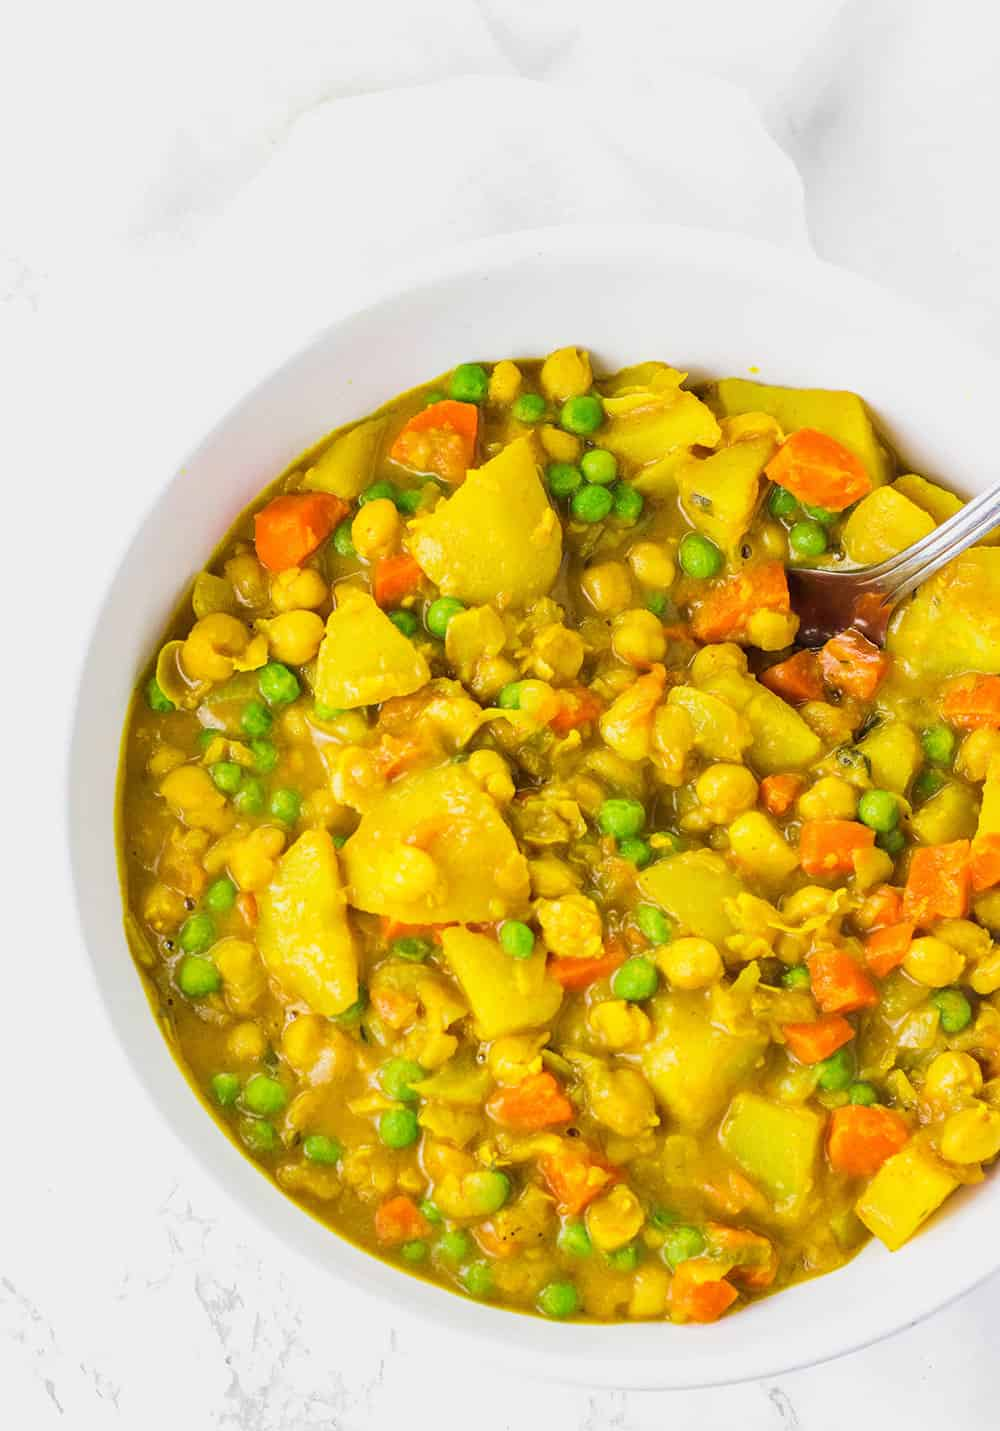 Curry Potato, Chickpea, Carrot and Green Peas Curry in a white bowl